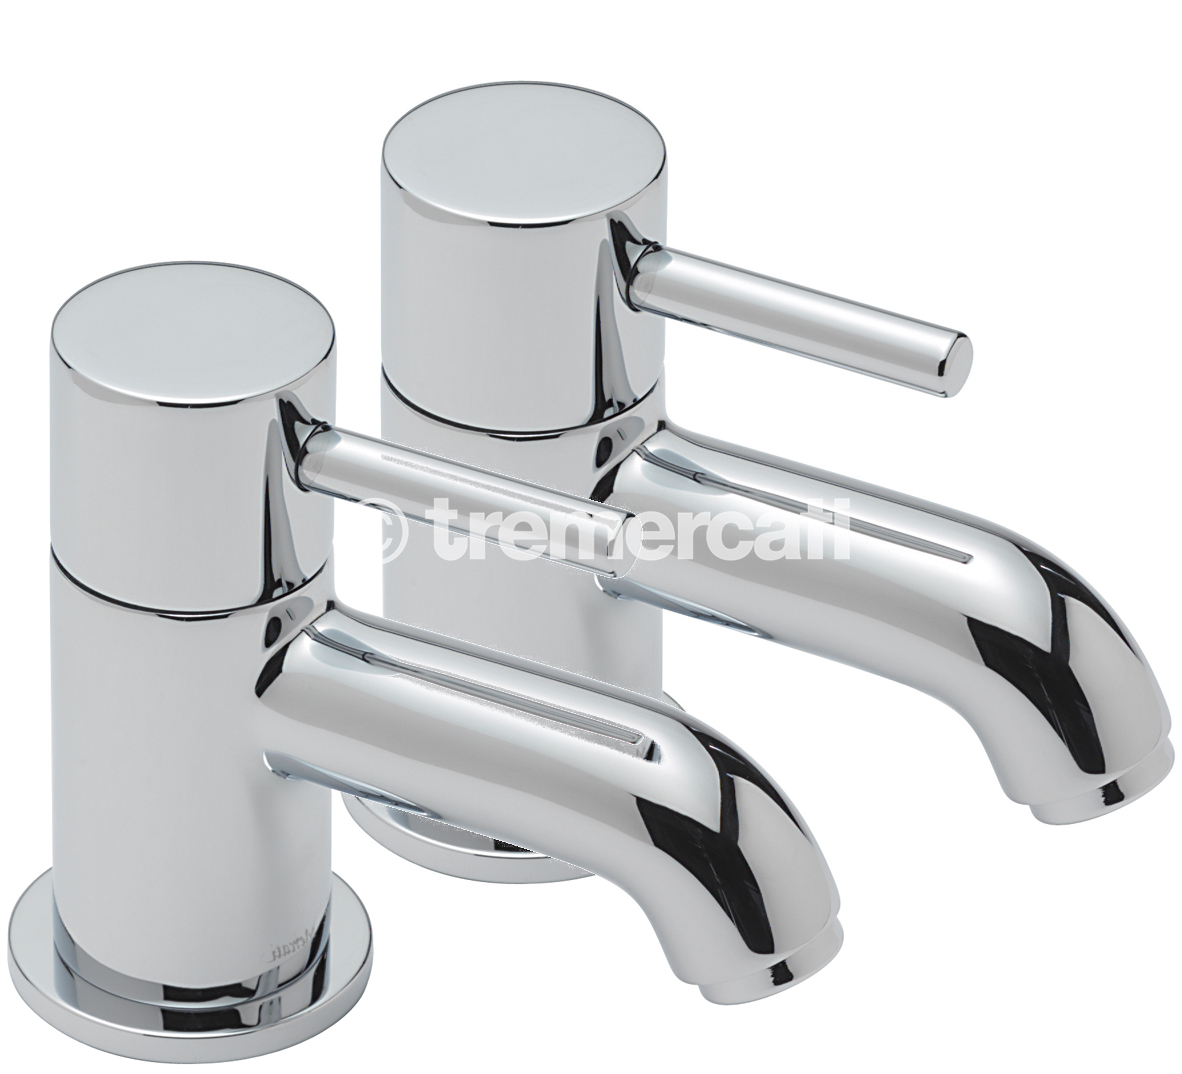 TRE MERCATI MILAN PAIR OF BATH TAPS - CHROME PLATED